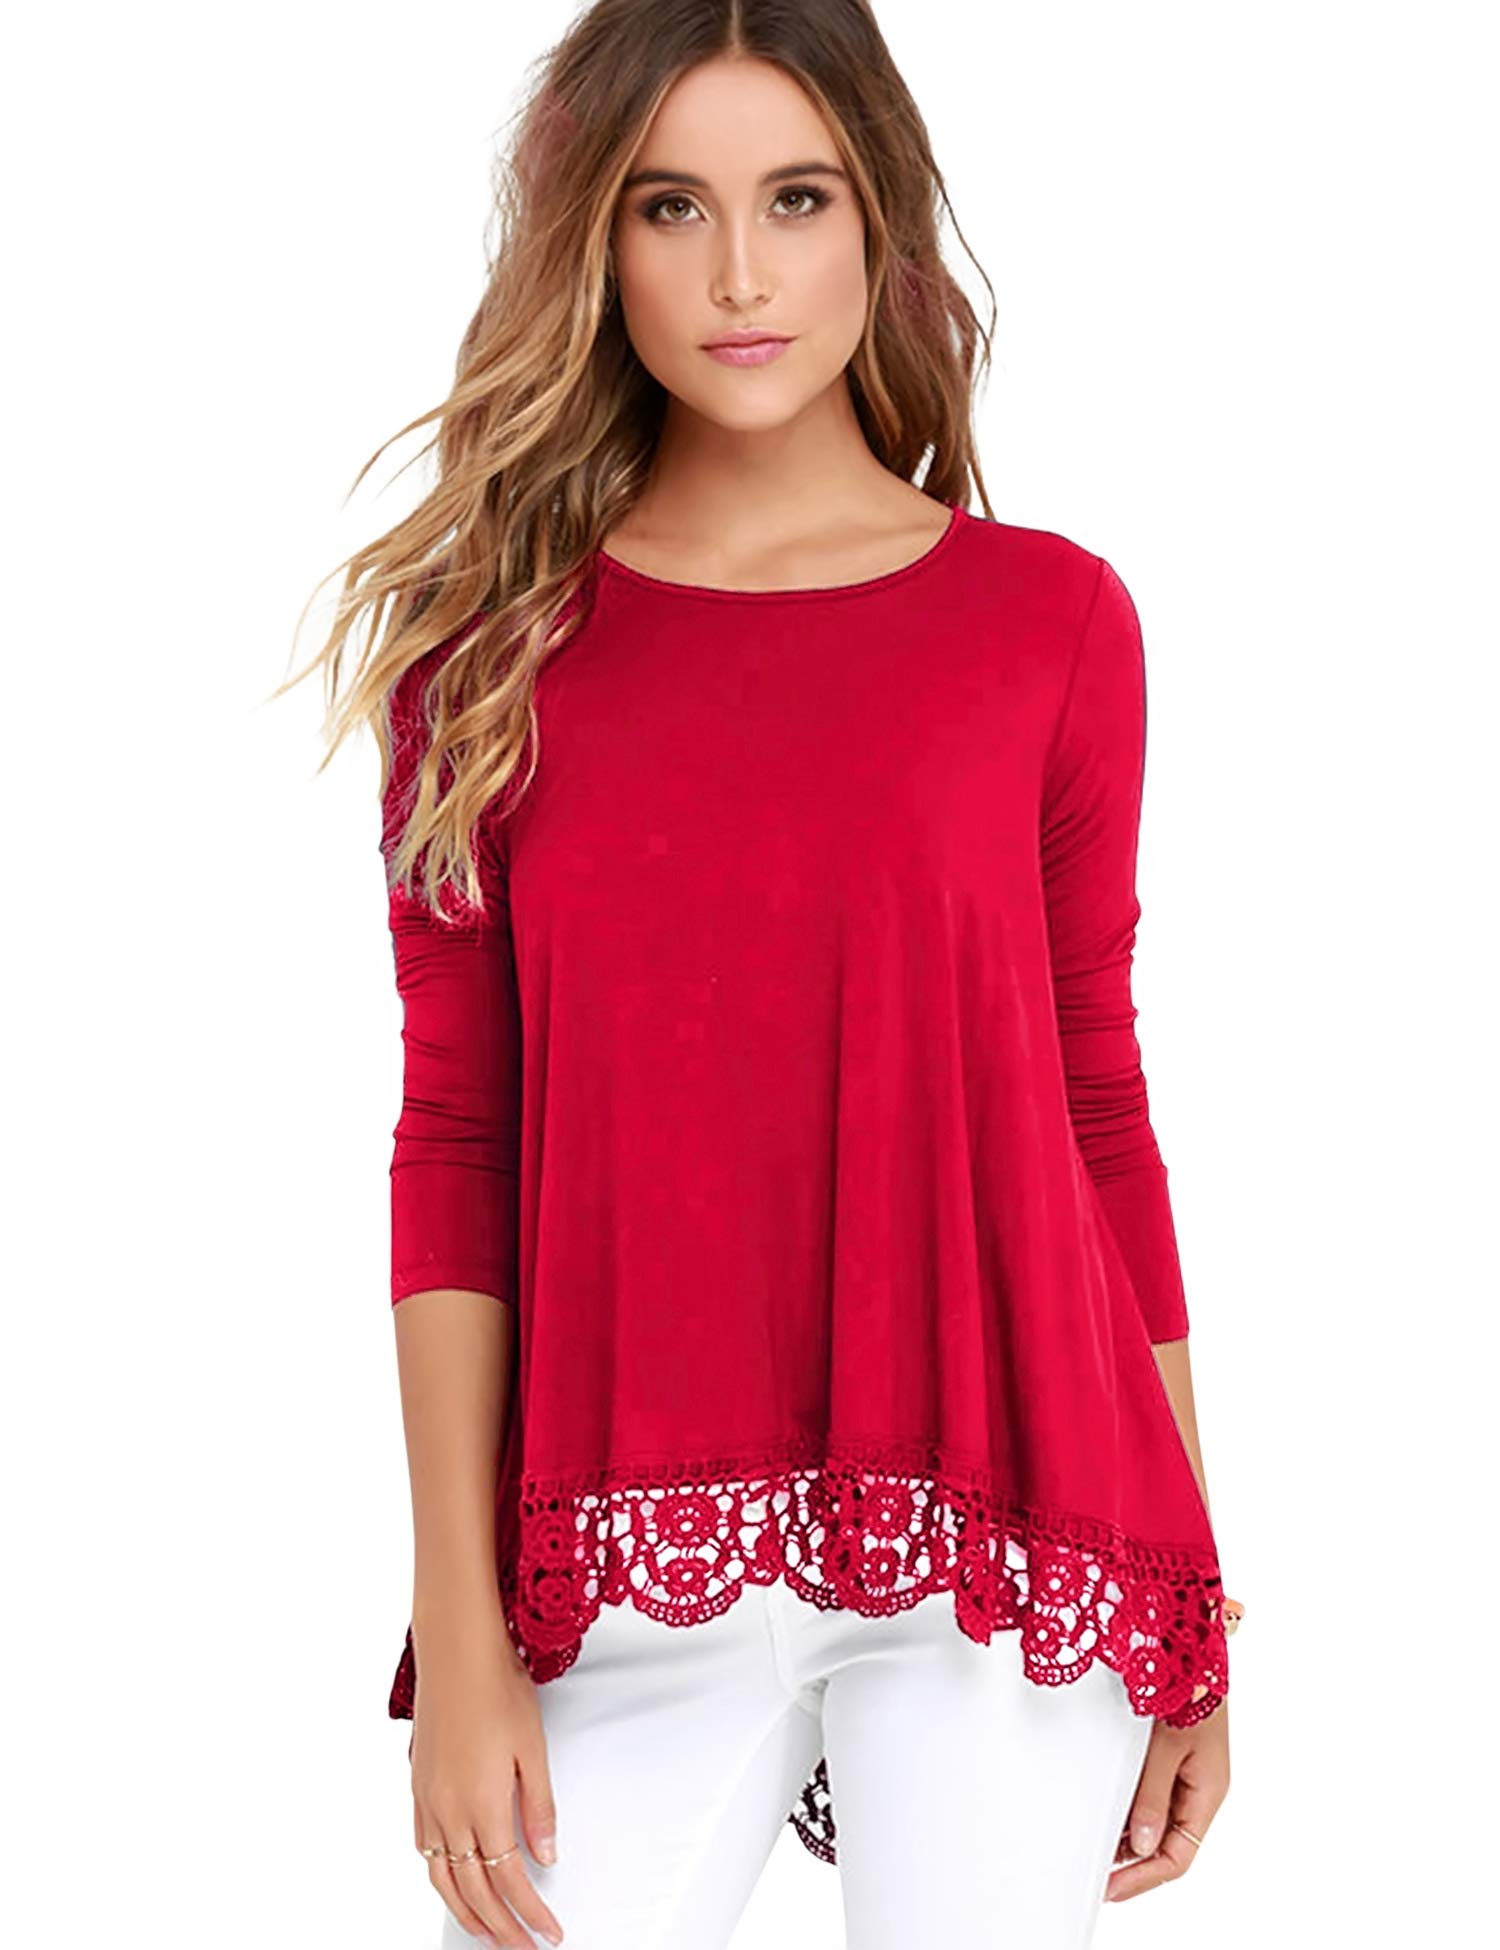 FISOUL Tops Long Sleeve Lace Trim O-Neck A-Line Tunic Tops Red XL